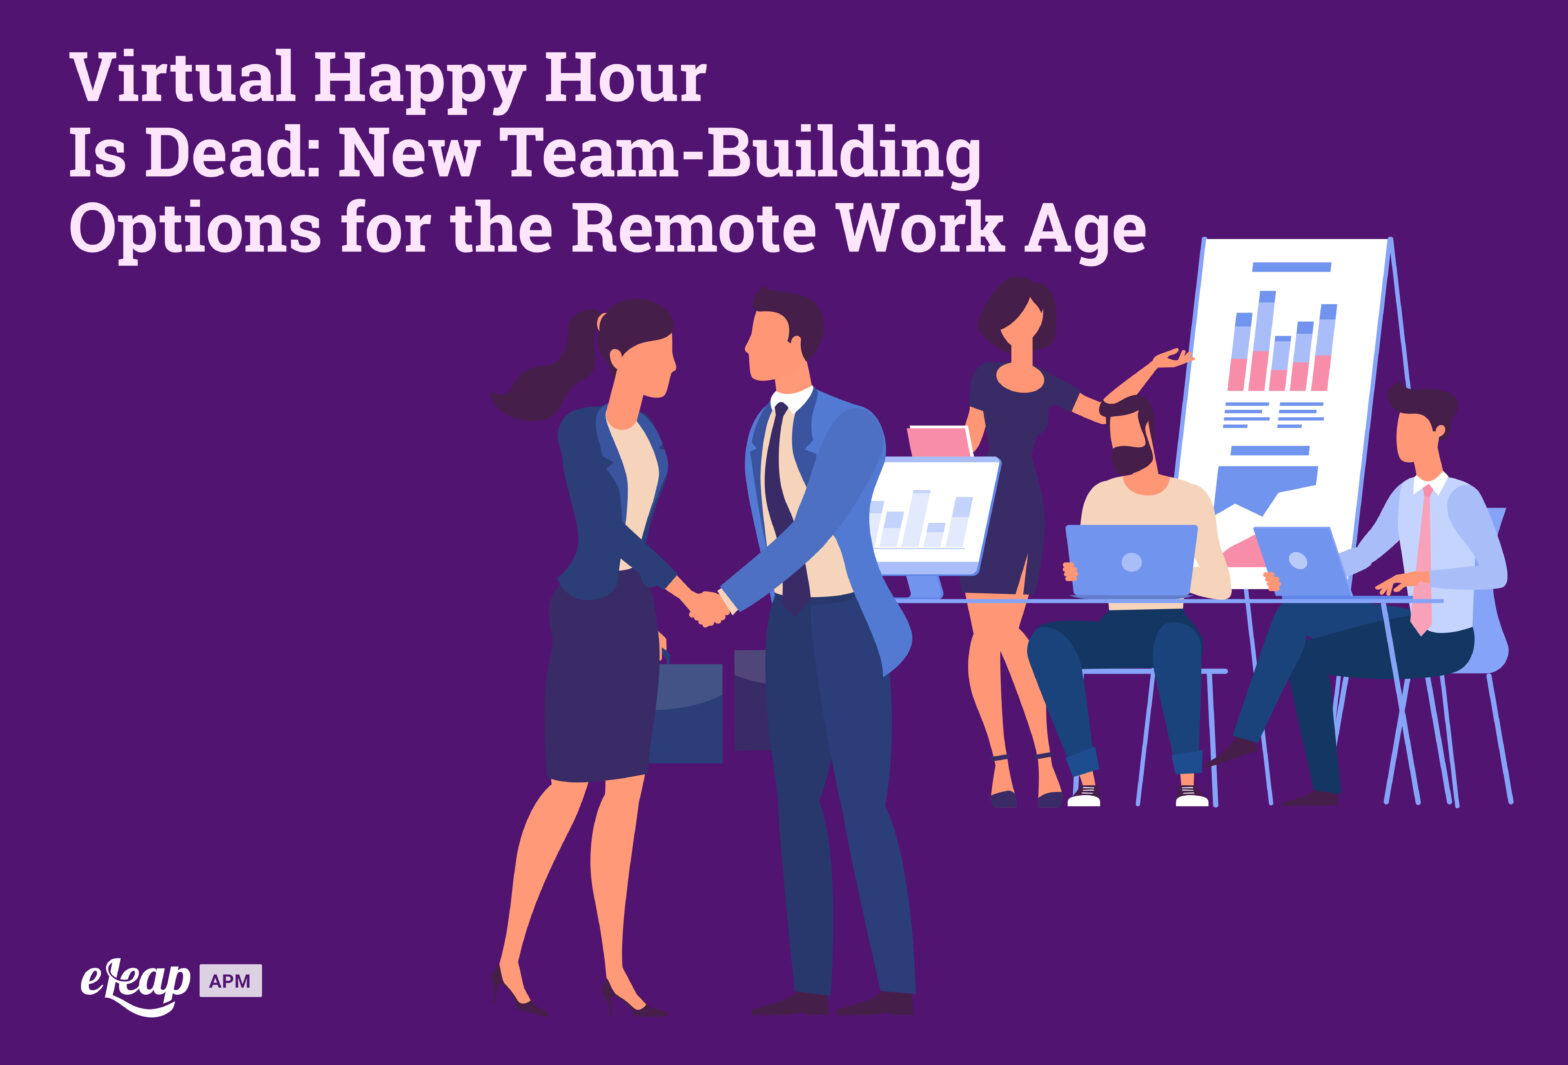 Virtual Happy Hour Is Dead: New Team-Building Options for the Remote Work Age